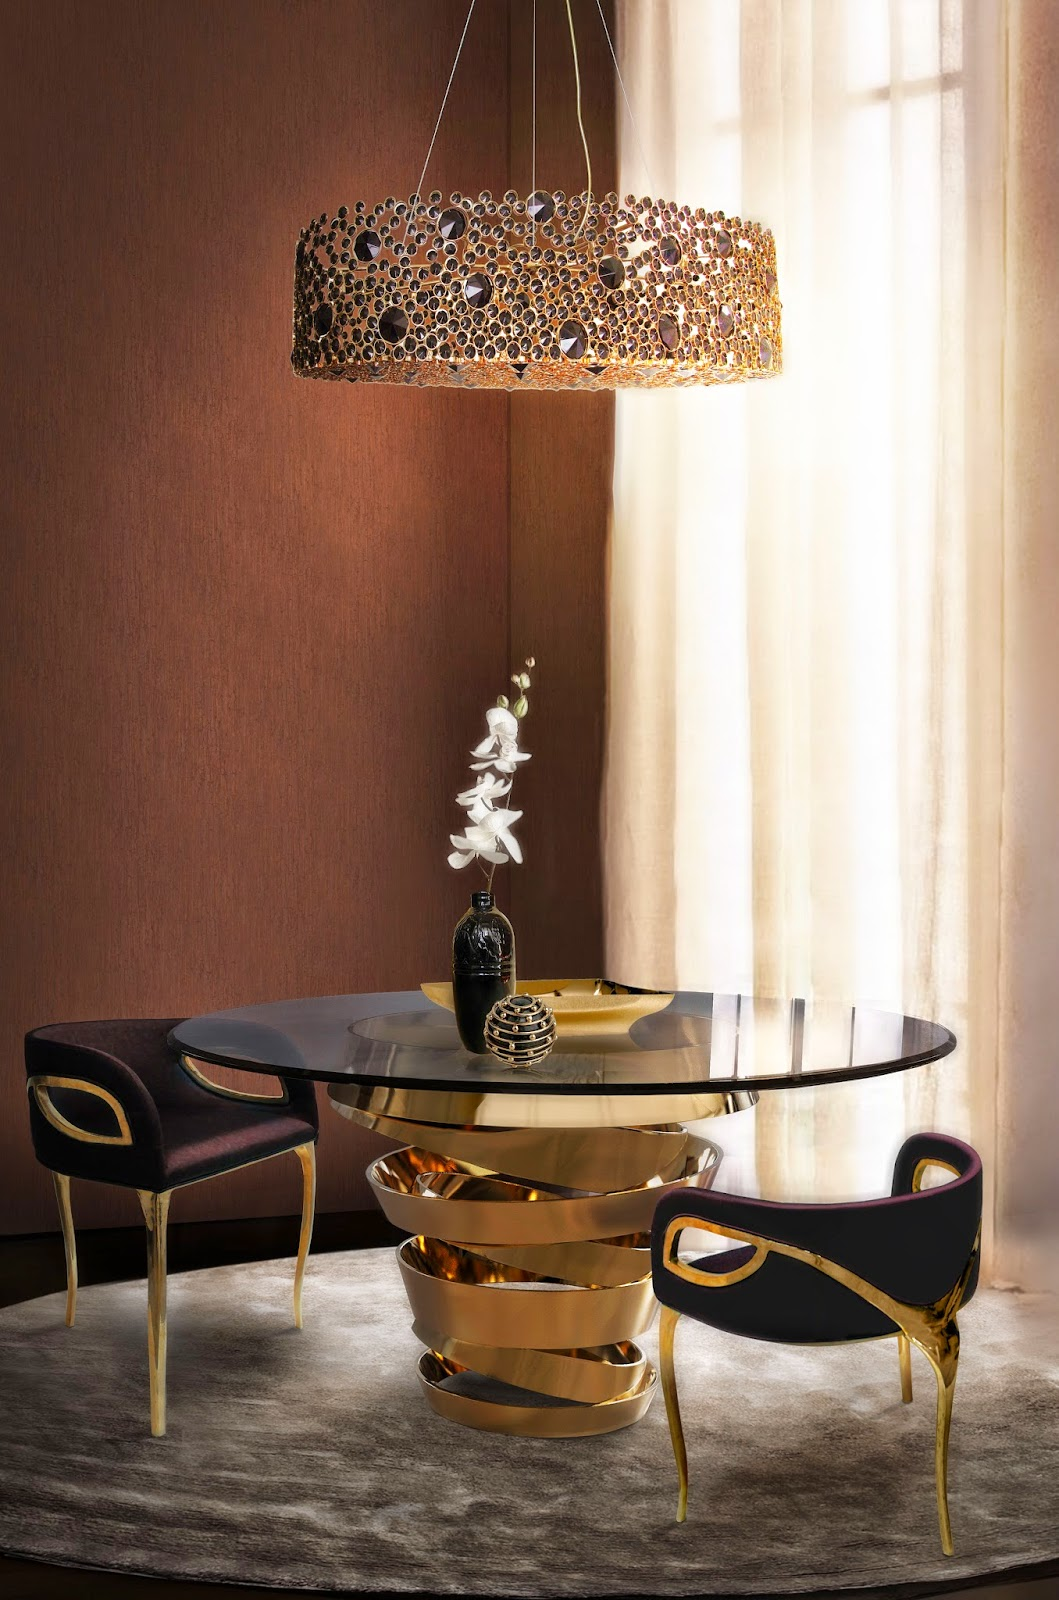 The Best Black And Gold Furniture For Your Living Room Décor Black And Gold  Furniture The